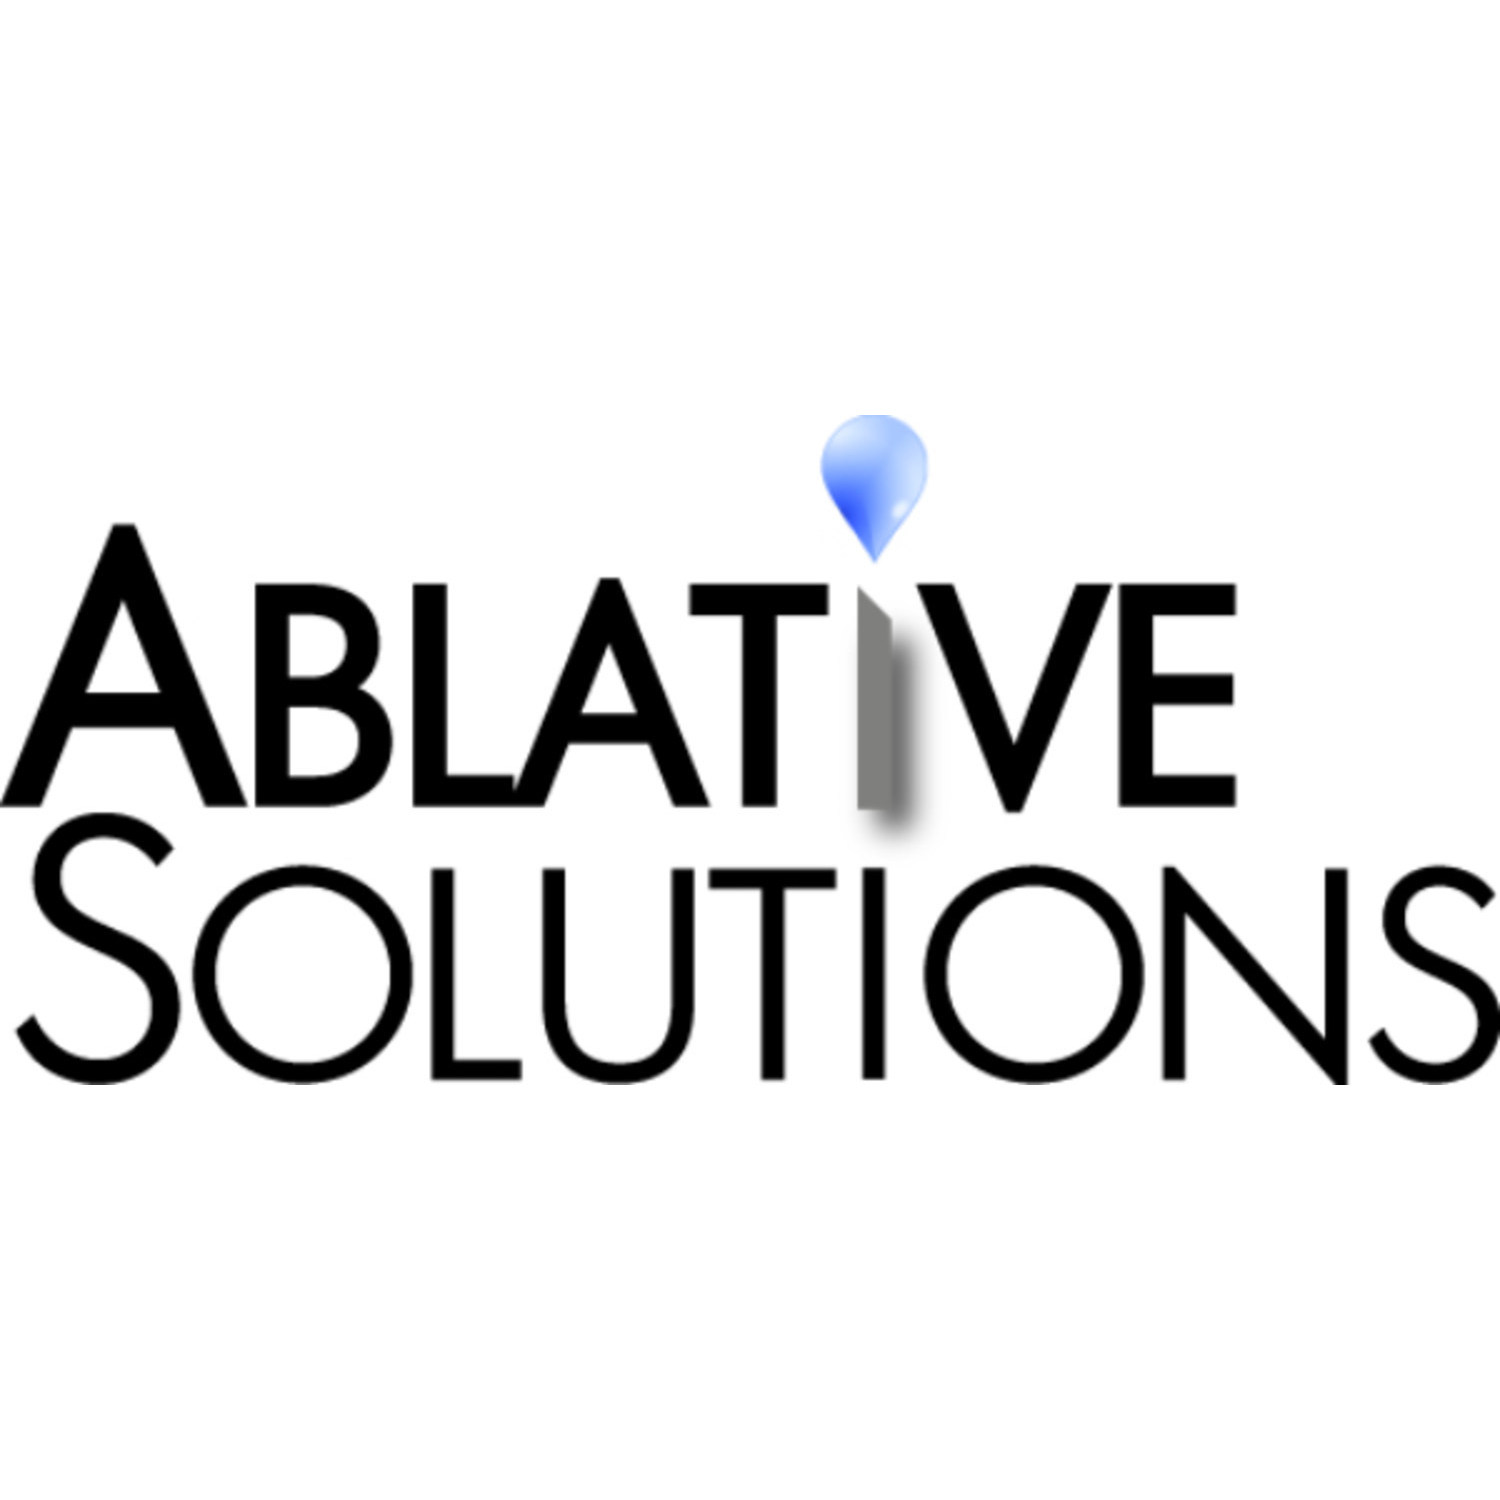 Ablative Solutions Stock